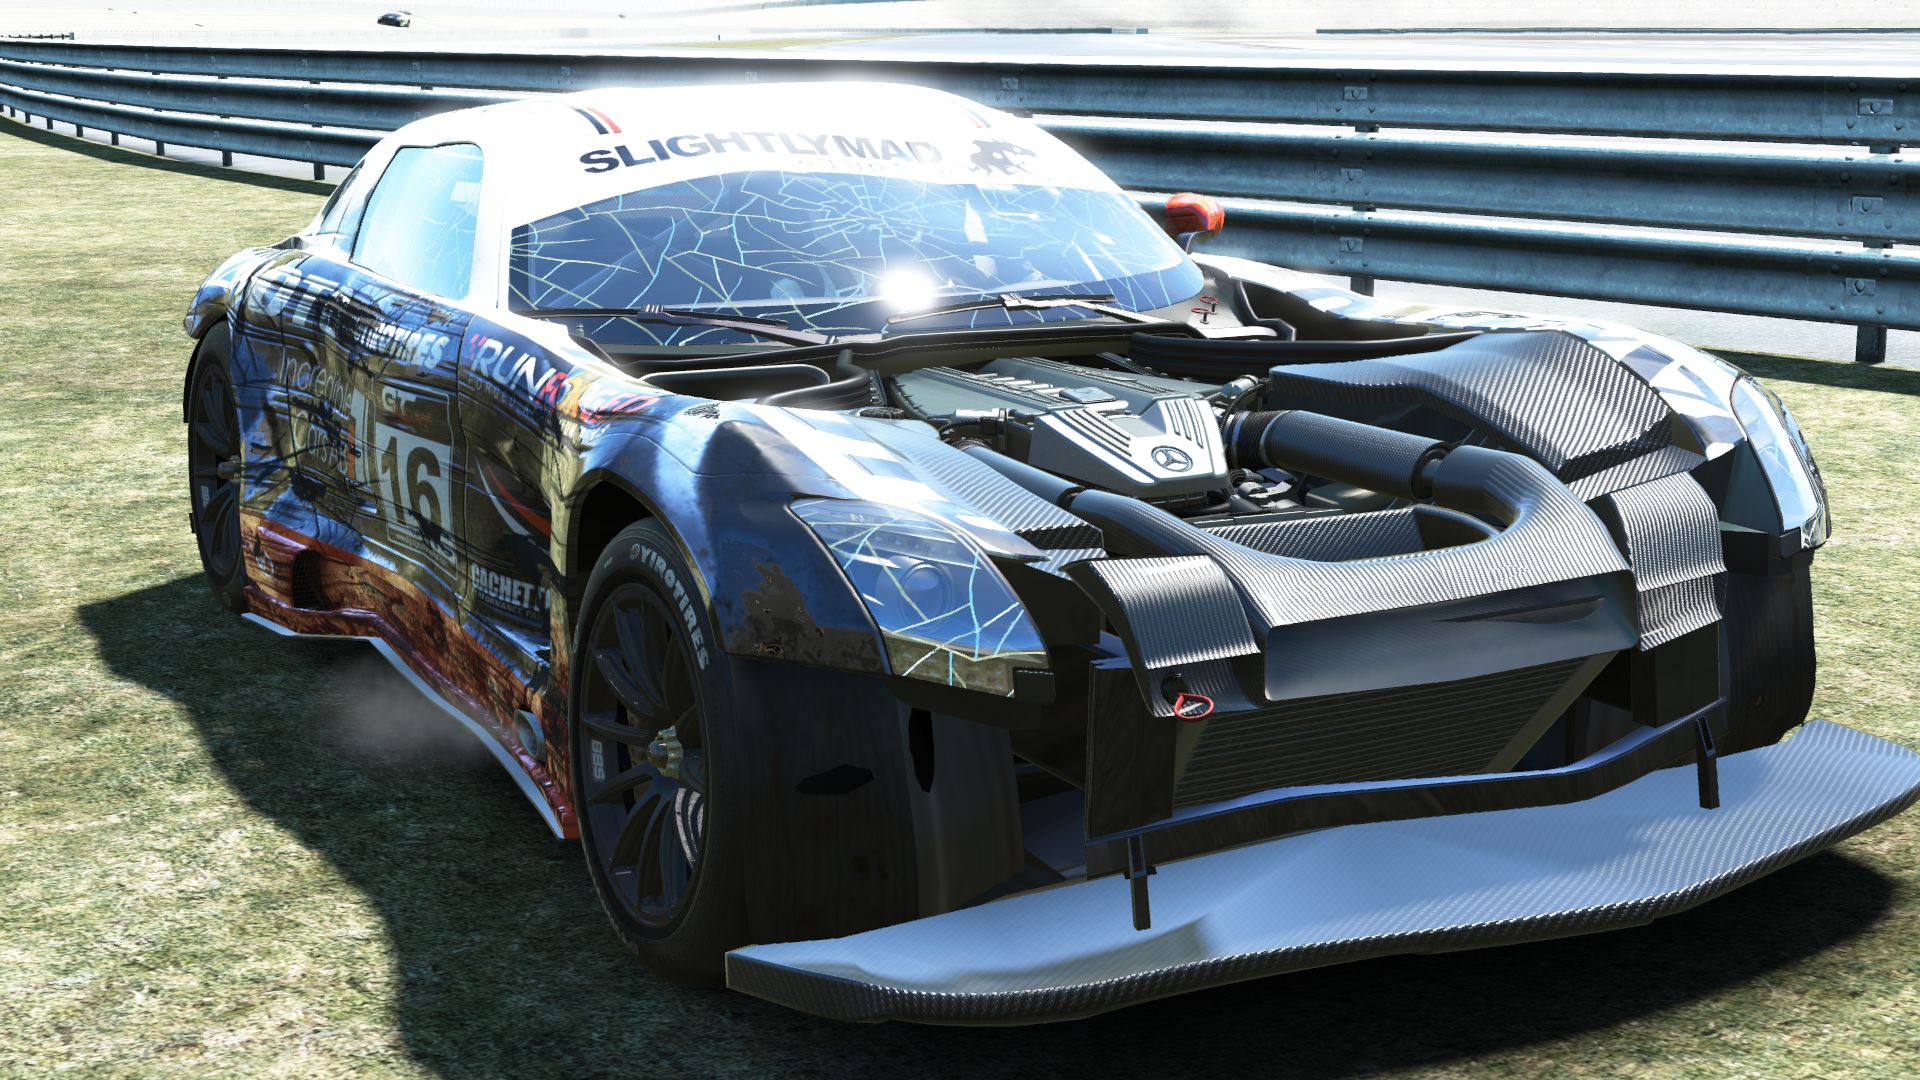 Amazing Project CARS Ultra Screenshots Show Car Carnage